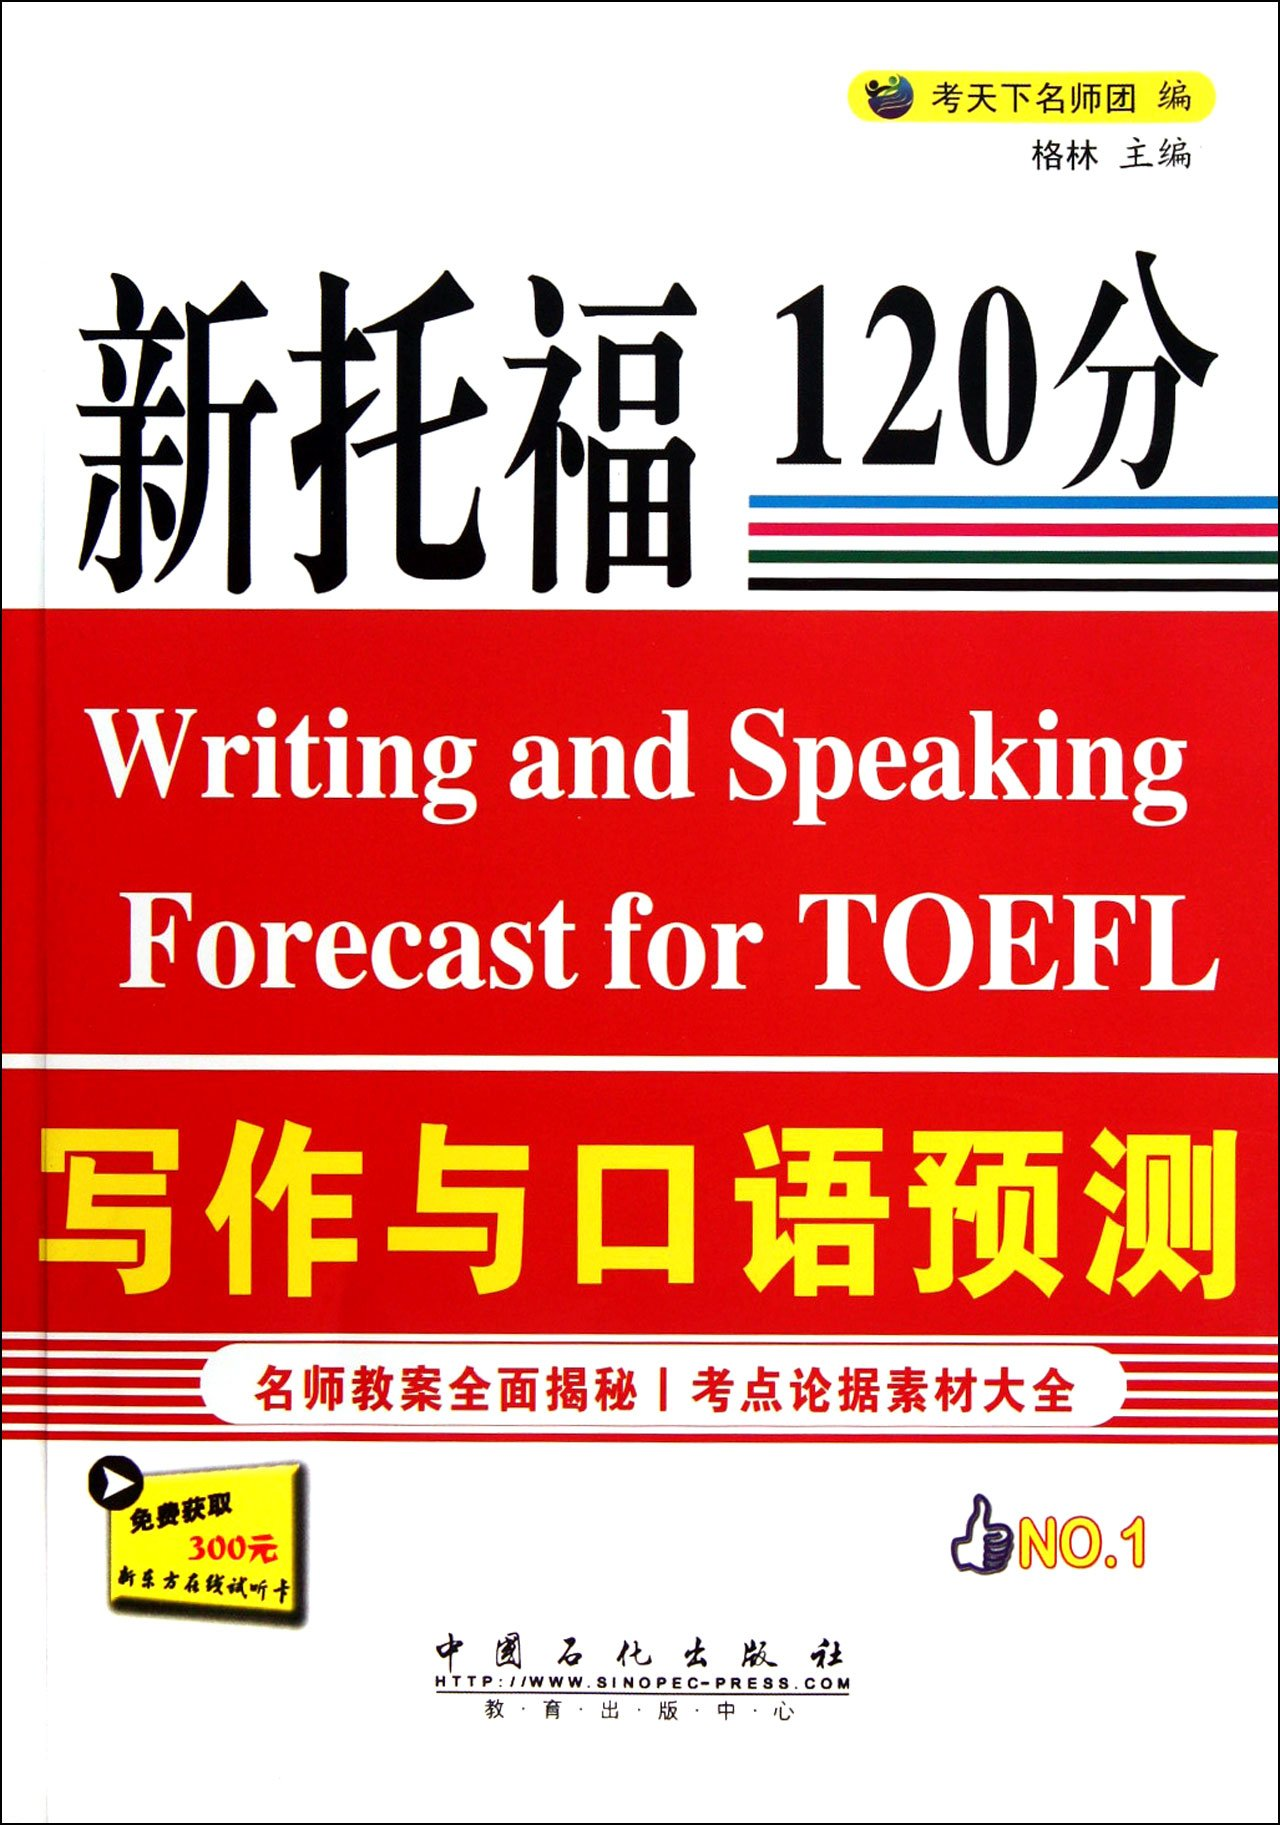 Read Online Writing and Speaking Forecast for TOEFL-Get A Worth 300.00RMB New Oriental Online Course Auditioning Card (Chinese Edition) pdf